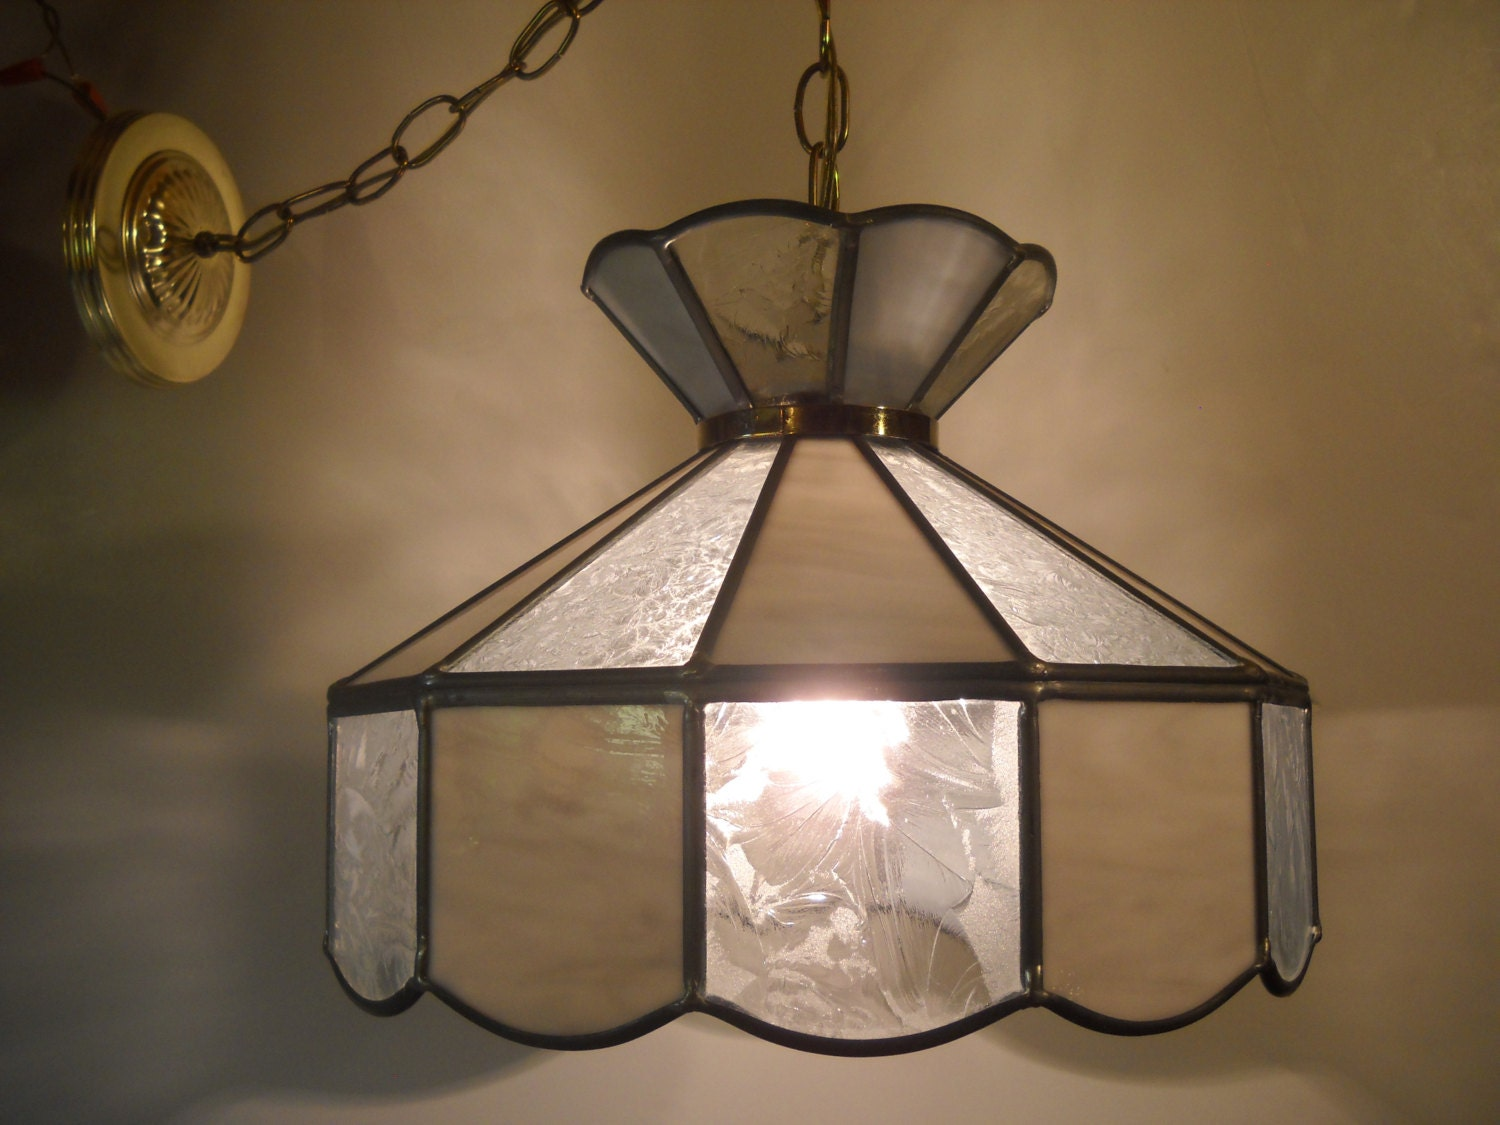 stained glass hanging light. Black Bedroom Furniture Sets. Home Design Ideas